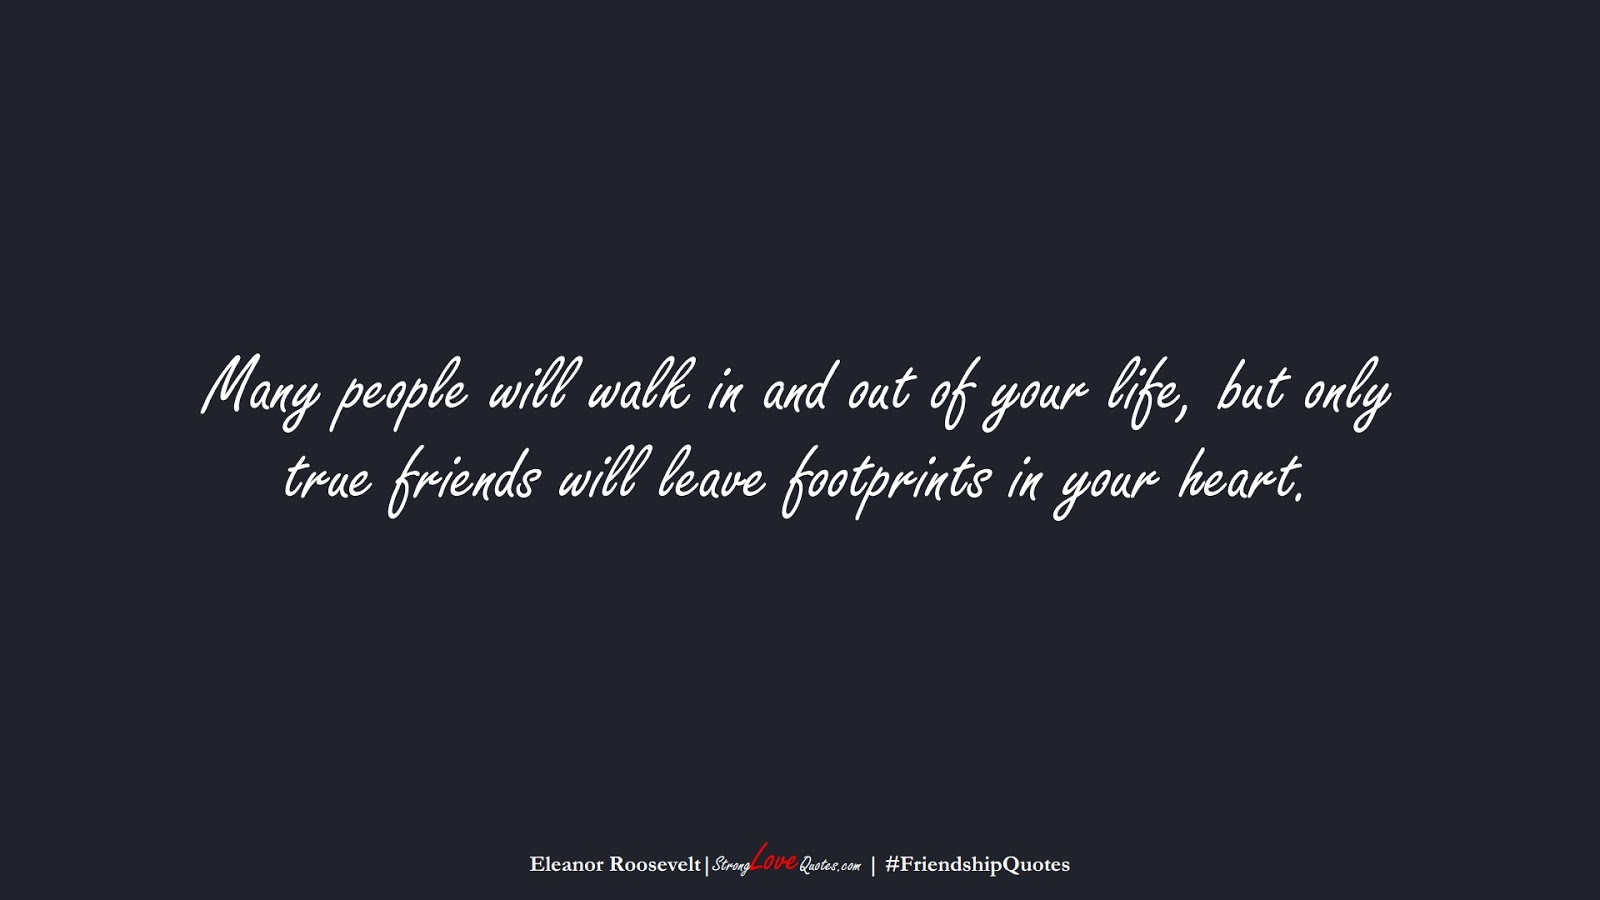 Many people will walk in and out of your life, but only true friends will leave footprints in your heart. (Eleanor Roosevelt);  #FriendshipQuotes